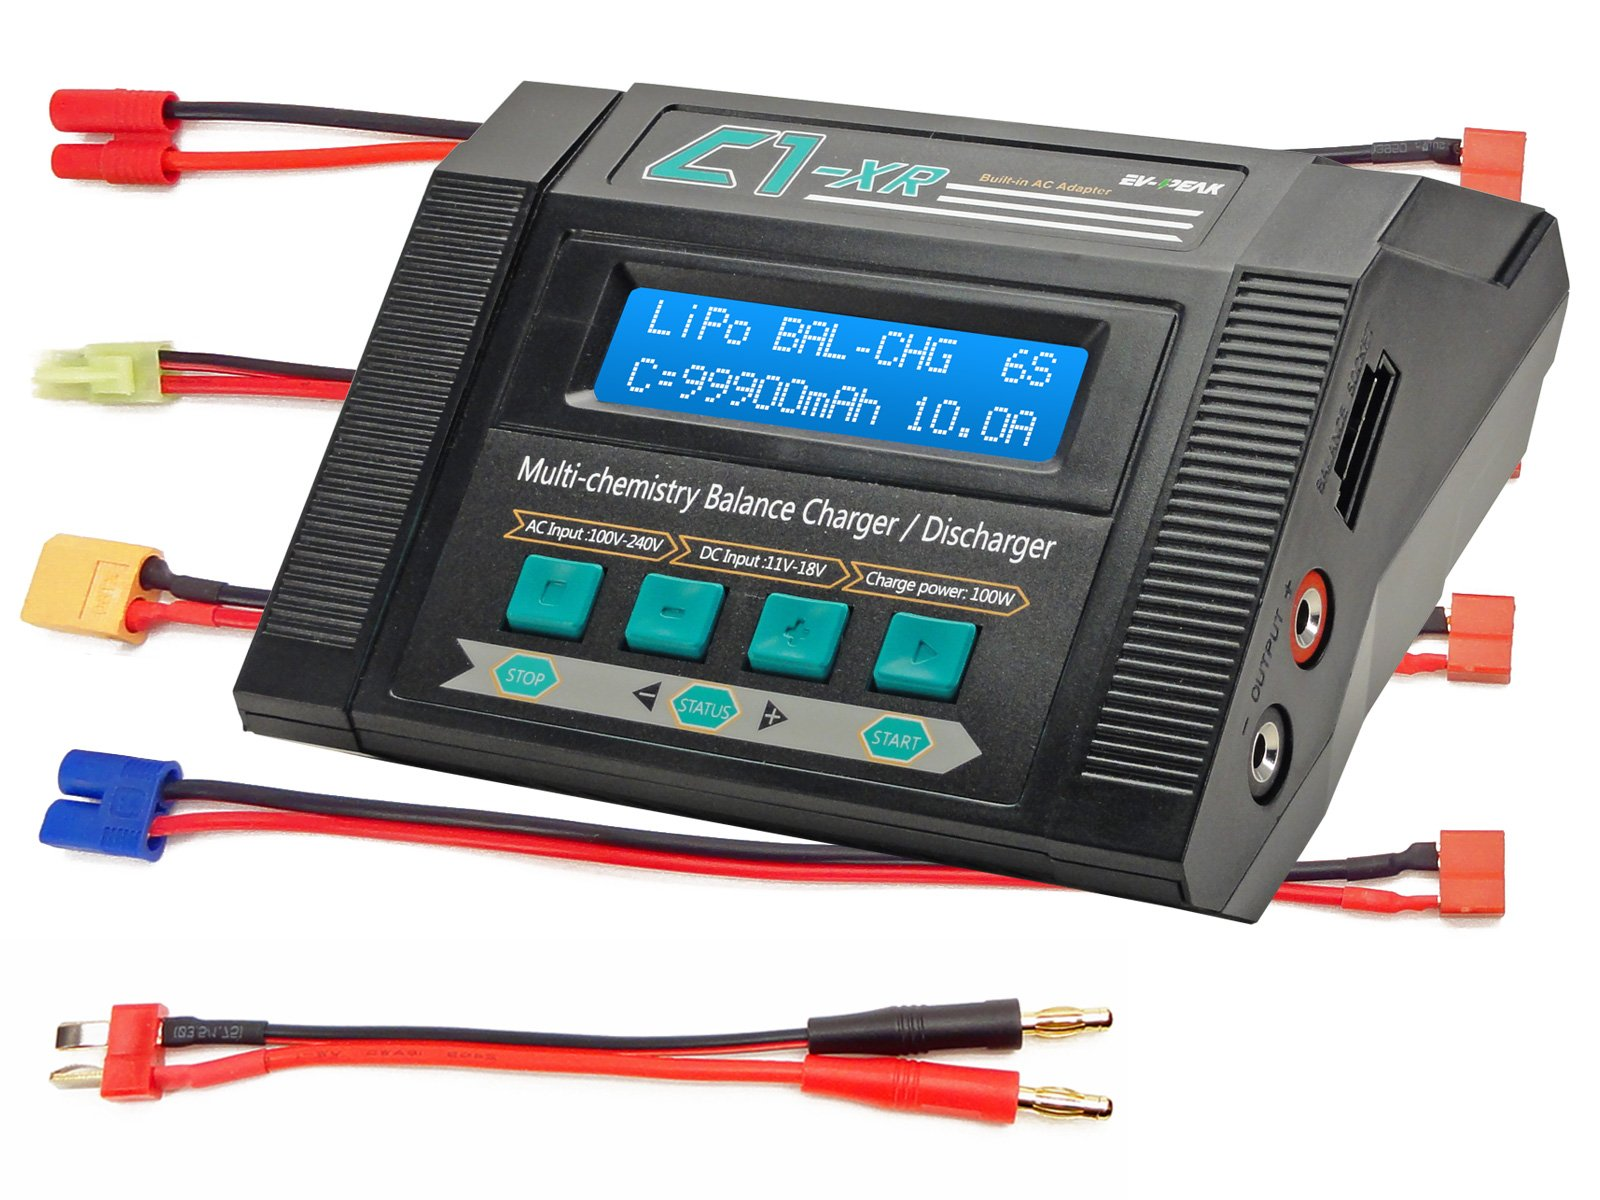 C1-XR AIR 10Amps 100Watts LiPo LiHV LiIo LiFe NiCd NiMh AC/DC Multi-Chemistry Balancing Battery Charger w Internal Resistance Terminal Voltage Control Battery Meter Deans XT60 EC3 Tamiya Mini Walkera